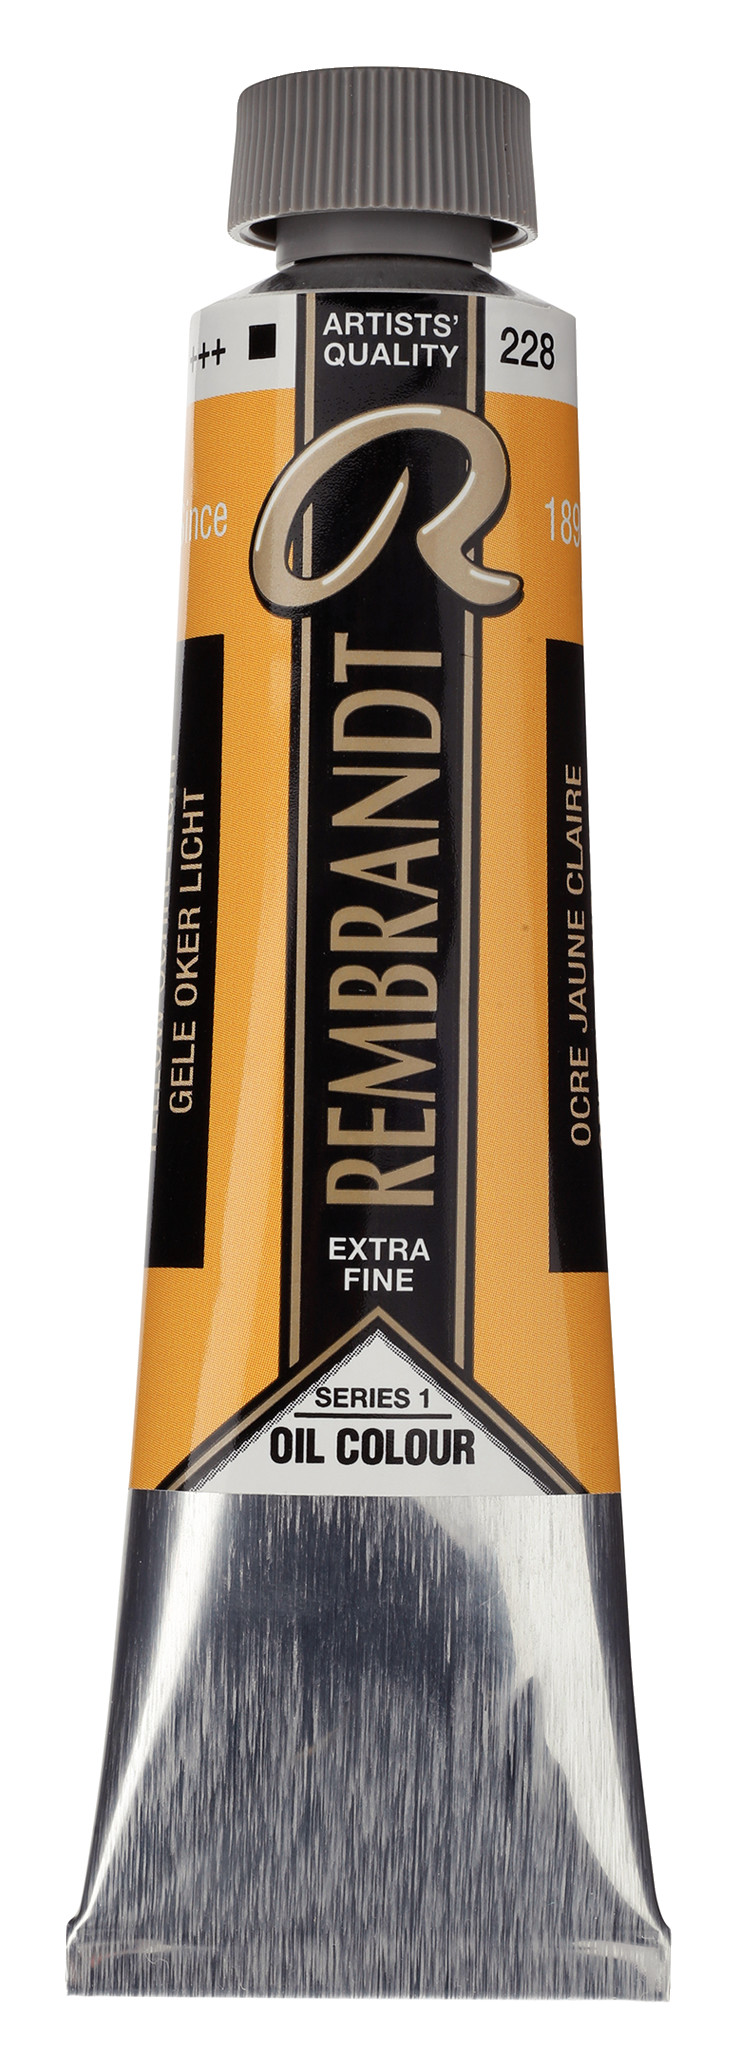 Rembrandt Oil colour Paint Yellow Ochre Light (228) 40ml Tube